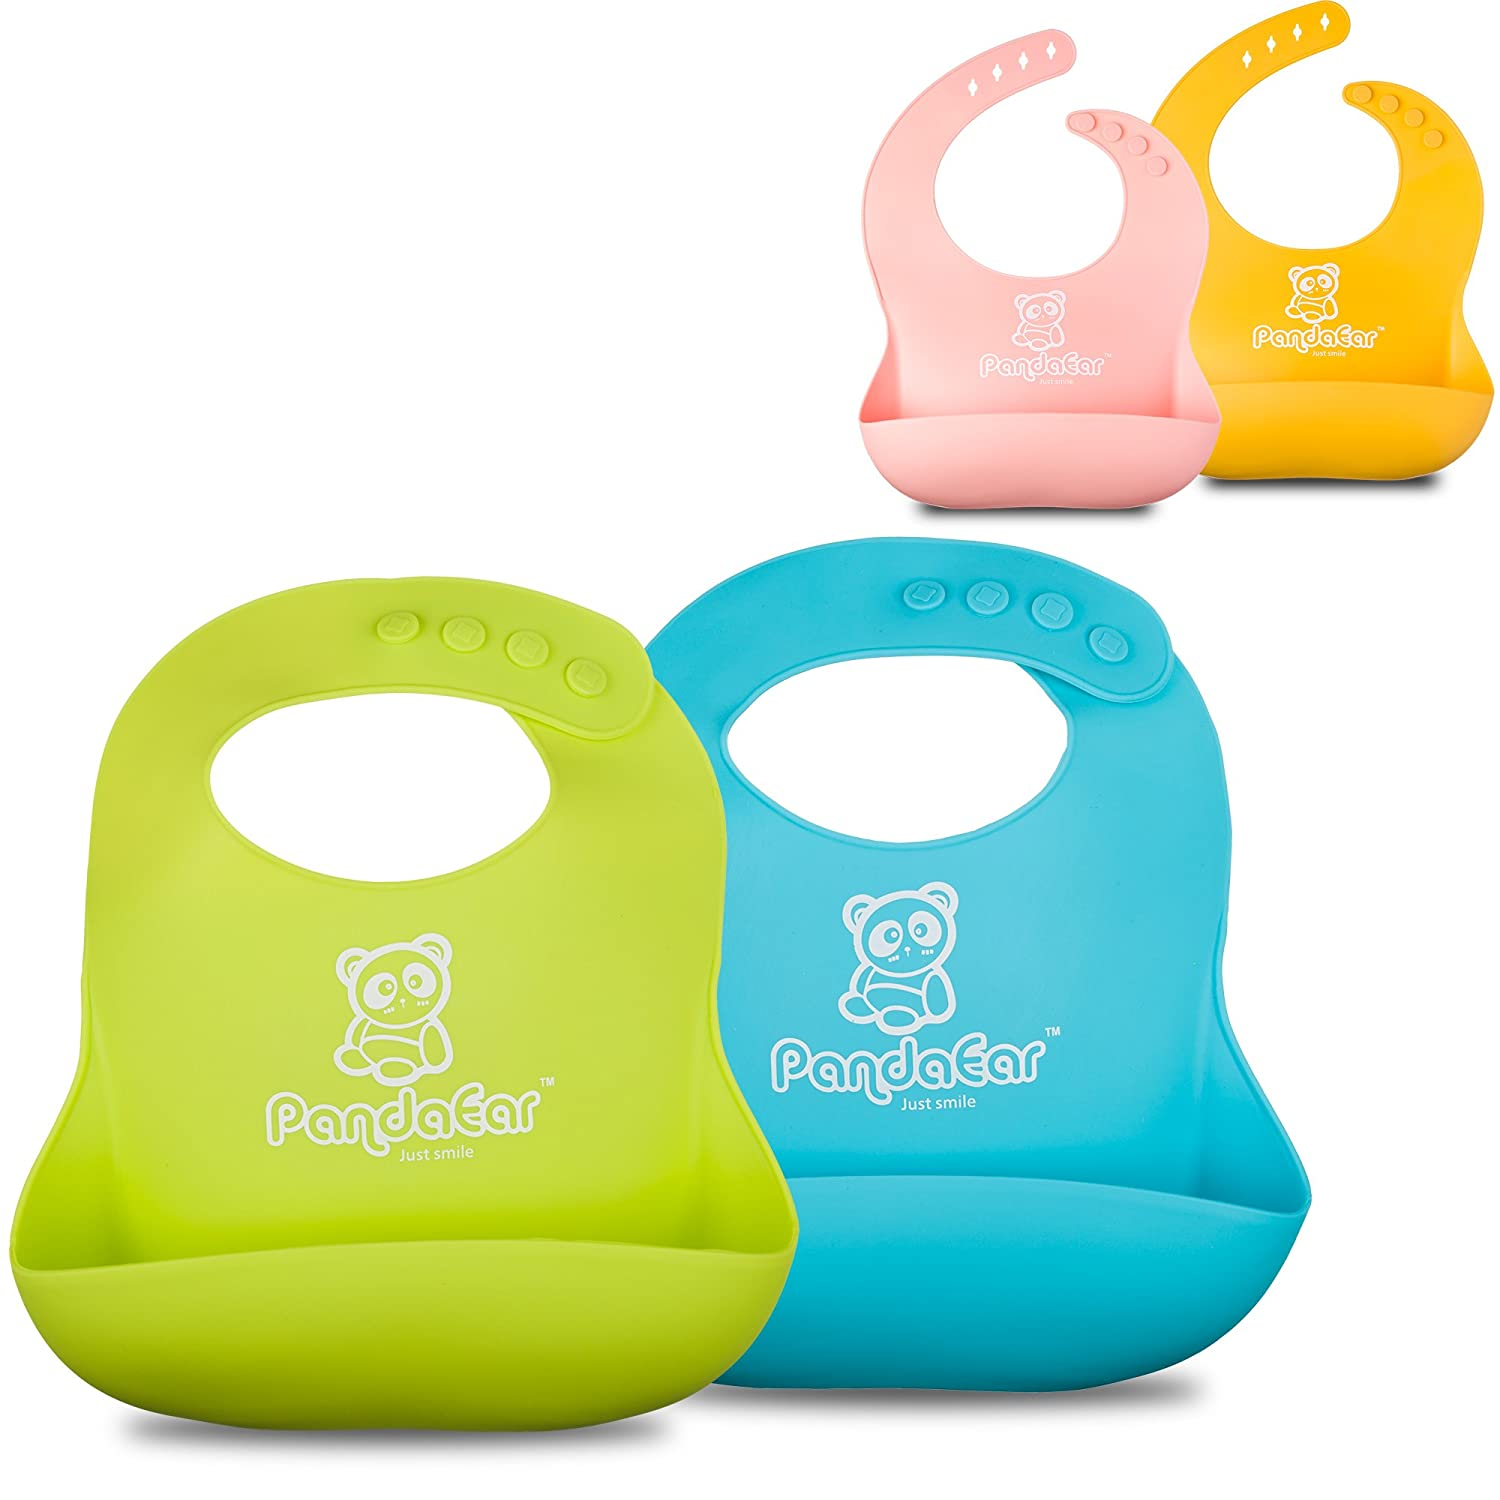 PandaEar Set of 2 Cute Silicone Bibs for Babies & Toddlers (10-72 Months) Waterproof, Soft, Unisex - Pink/Yellow